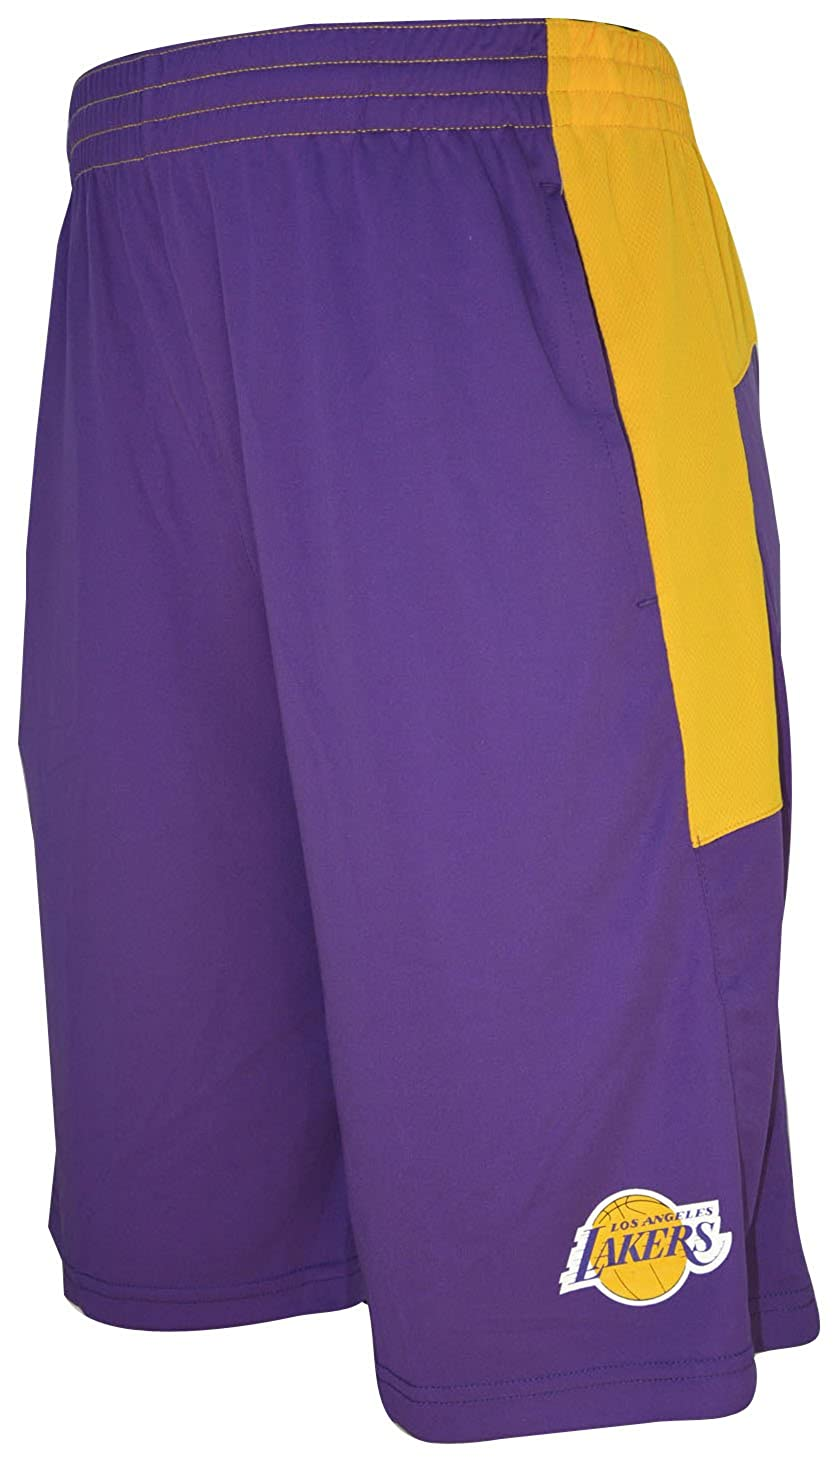 a7306b7c5f942 Amazon.com: Outerstuff Los Angeles Lakers NBA Youth Jersey Shorts: Clothing